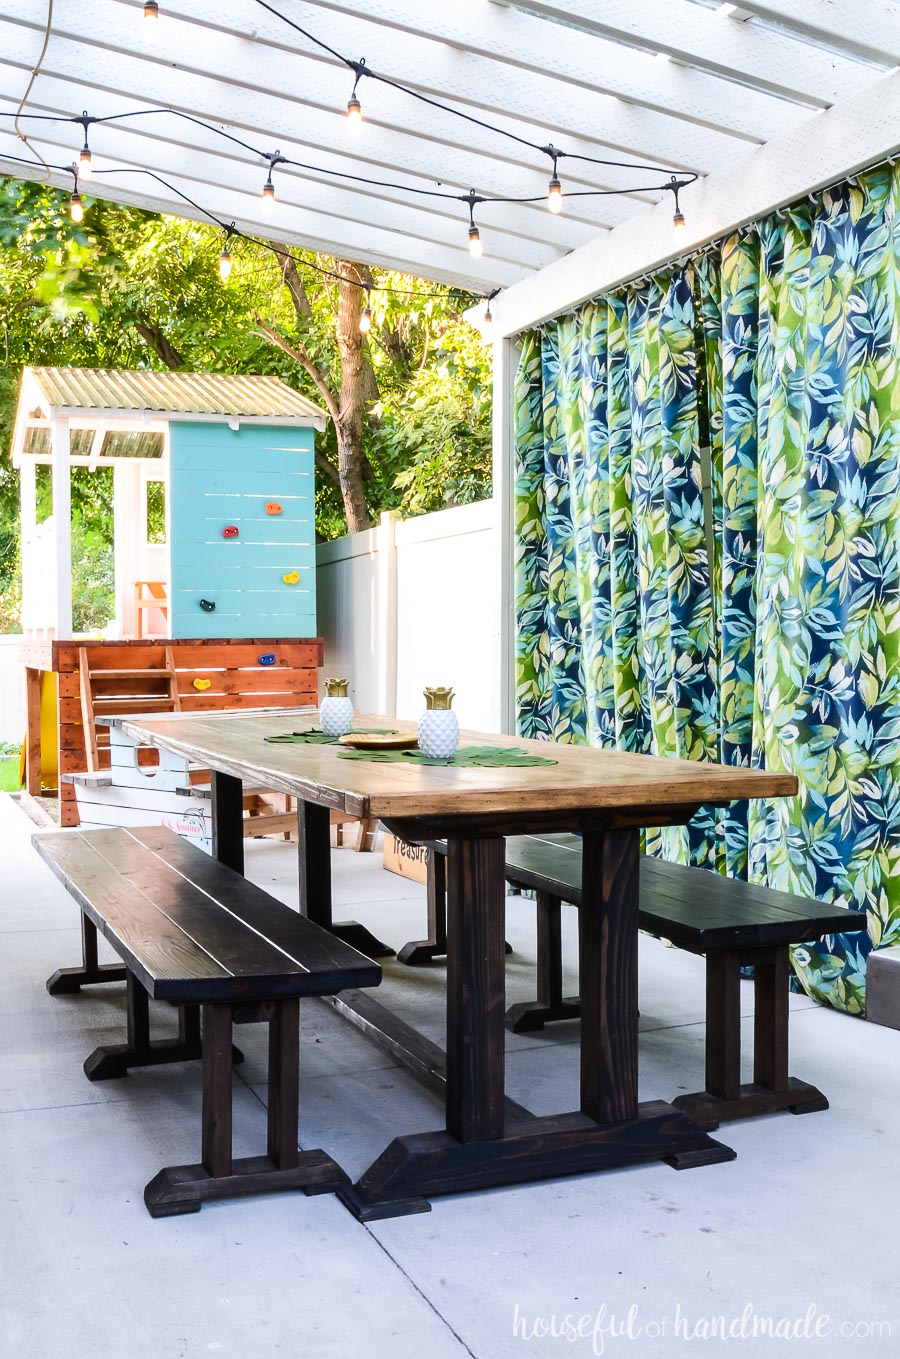 Island inspired outdoor living spaces. Patio pergola with tropical outdoor curtains and a large outdoor dining room. Kids play house in the background.